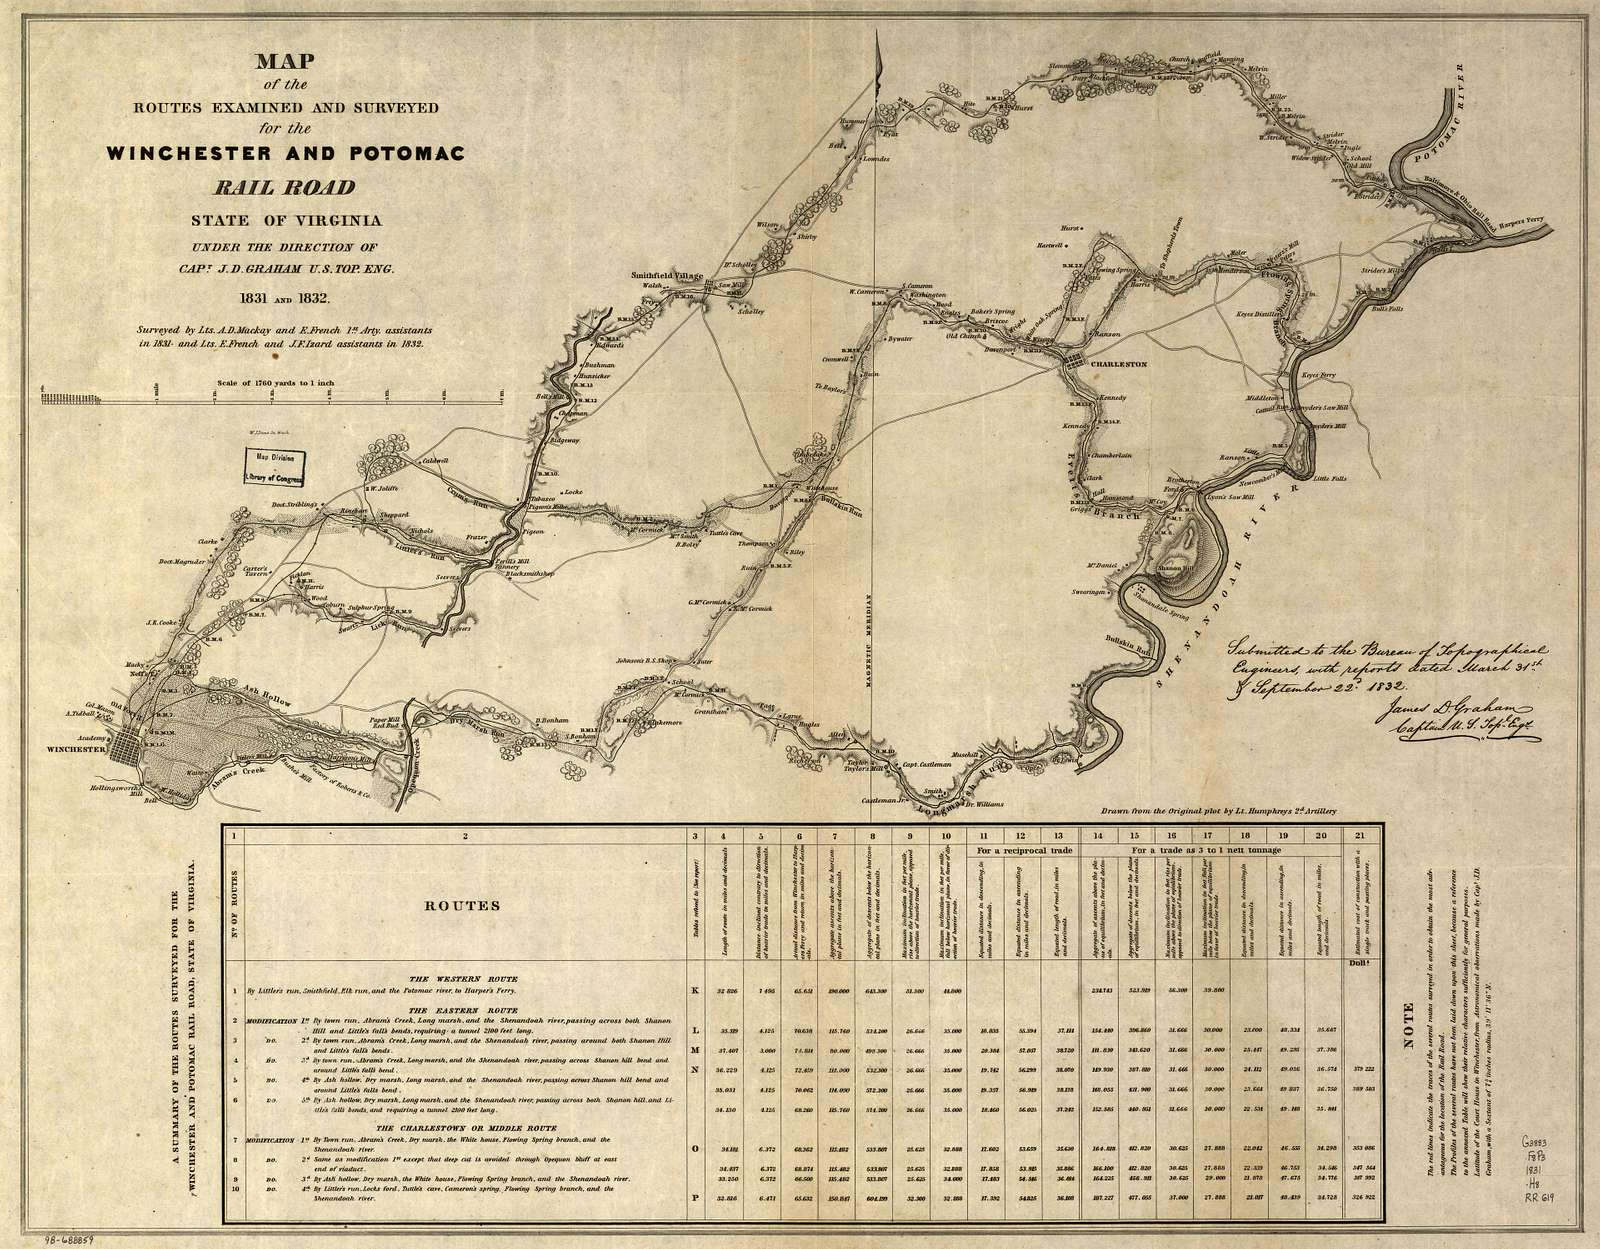 Map of the routes examined and surveyed for the Winchester and Potomac Rail Road, State of Virginia, under the direction of Capt. J. D. Graham, U.S. Top. Eng., 1831 and 1832; surveyed by Lts. A. D. Mackay and E. French, 1st Arty., assistants in 1831, and Lts. E. French and J. F. Izard, assistants in 1832; drawn from the original plot by Lt. Humphreys, 2d Artillery.